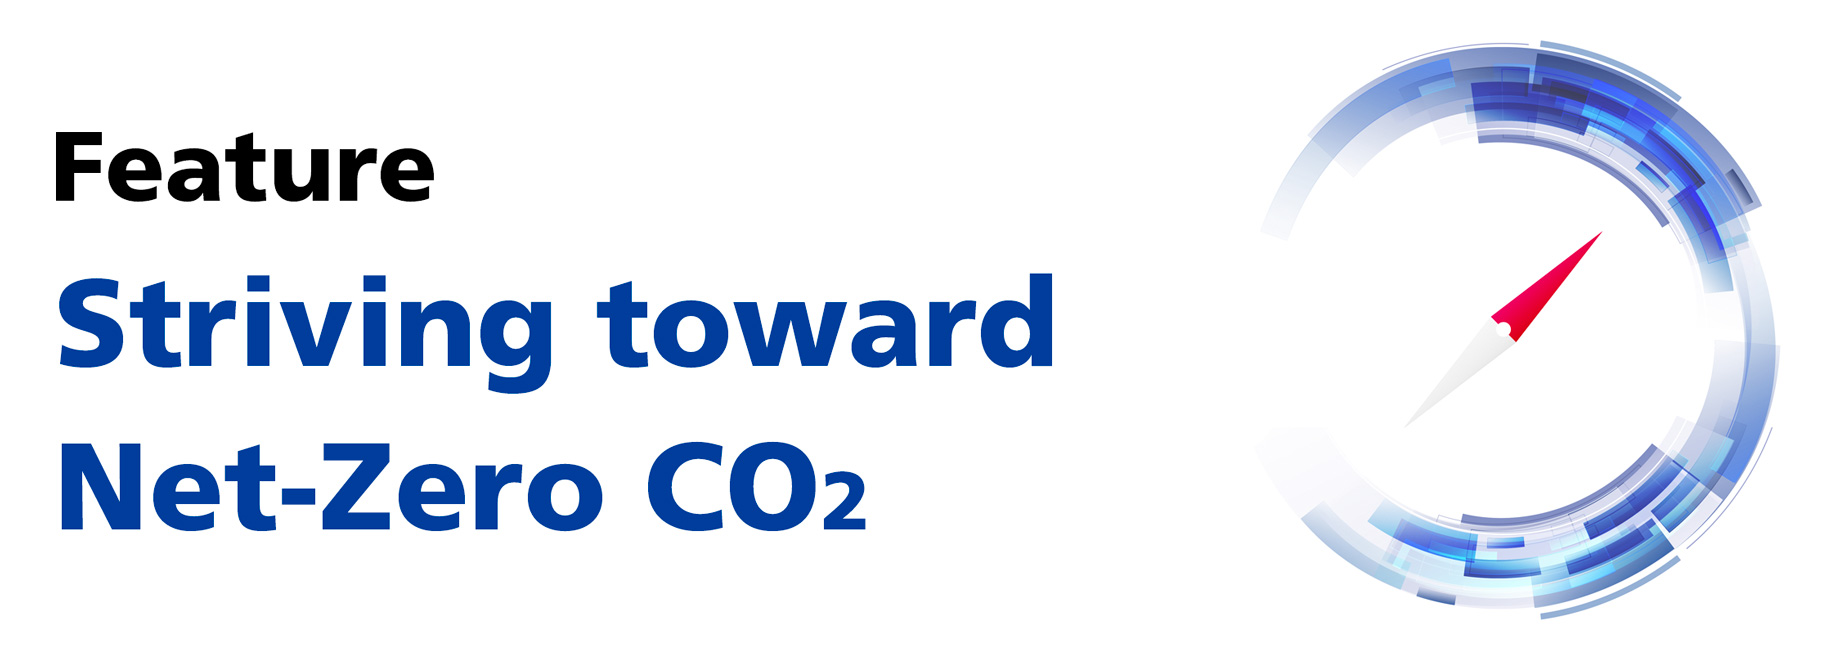 Feature Striving toward Net-Zero CO2